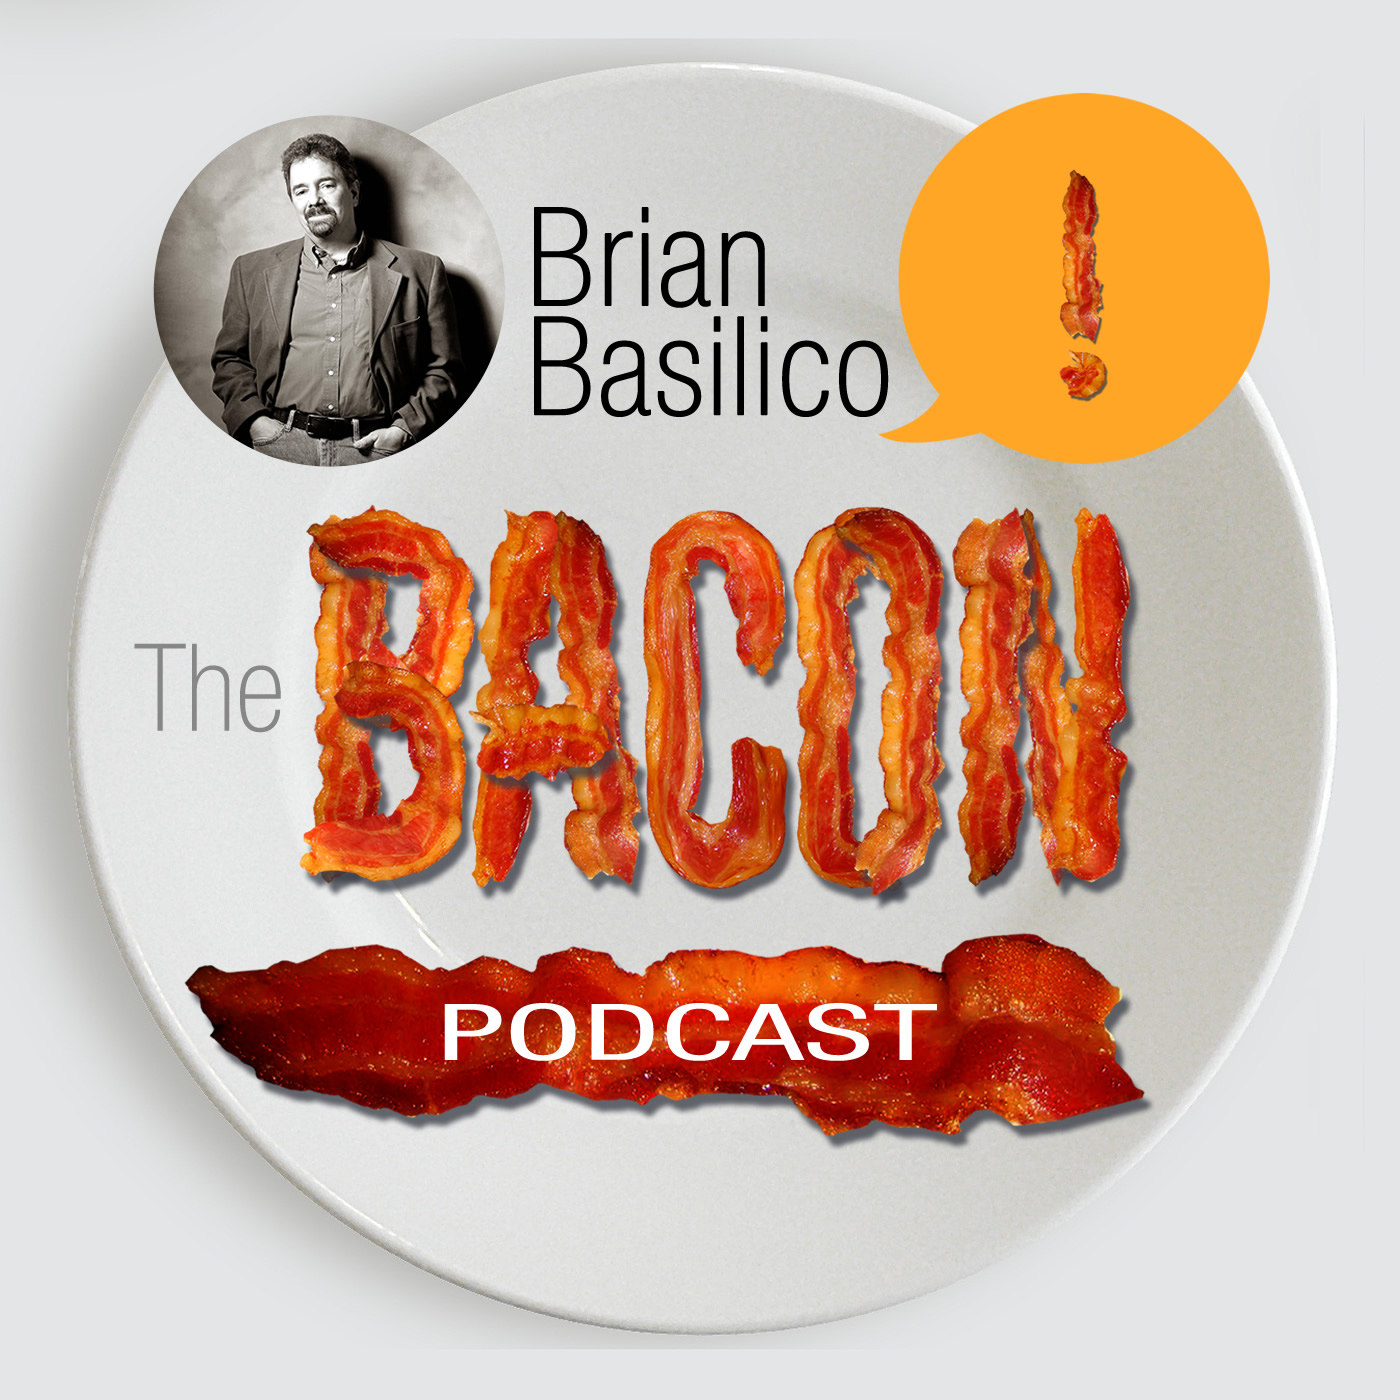 The Bacon Podcast | Brian Basilico - Marketing Strategy Expert Interviews to CURE Your Marketing & Make Business SIZZLE!